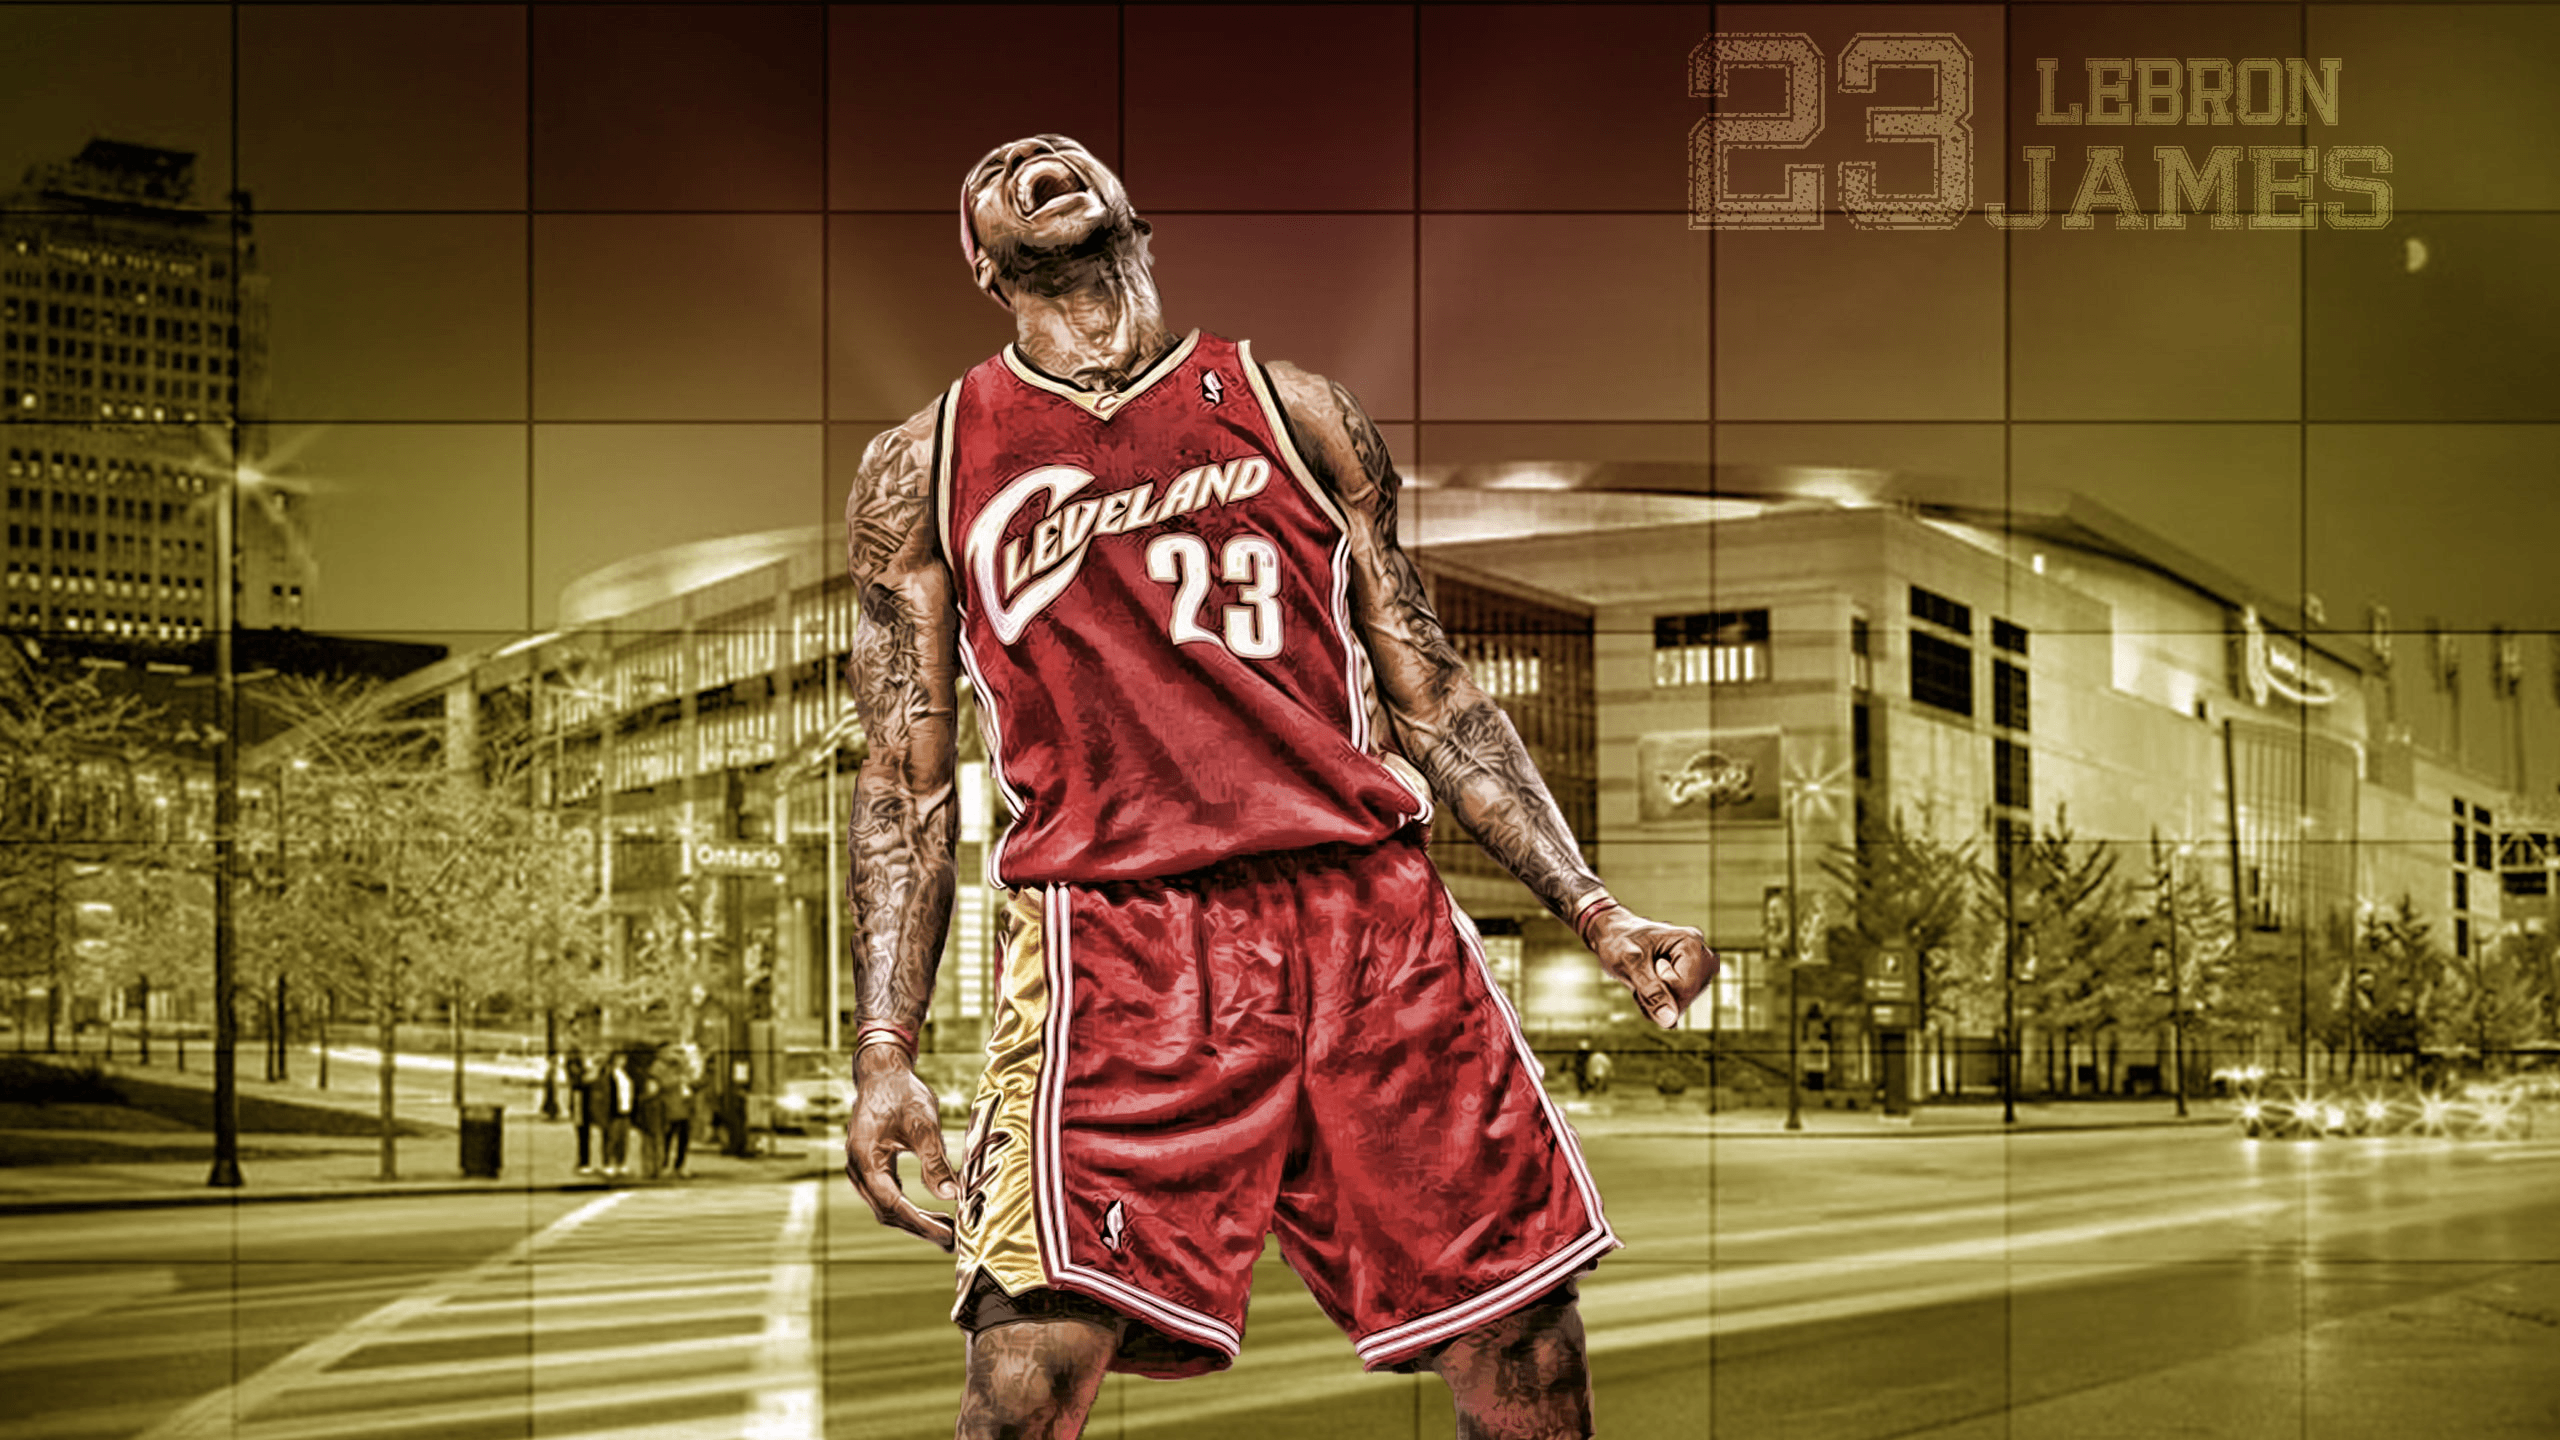 Hd Wallpapers For Laptop 15 6 Inch Screen Lebron James Wallpapers 2016 Wallpaper Cave